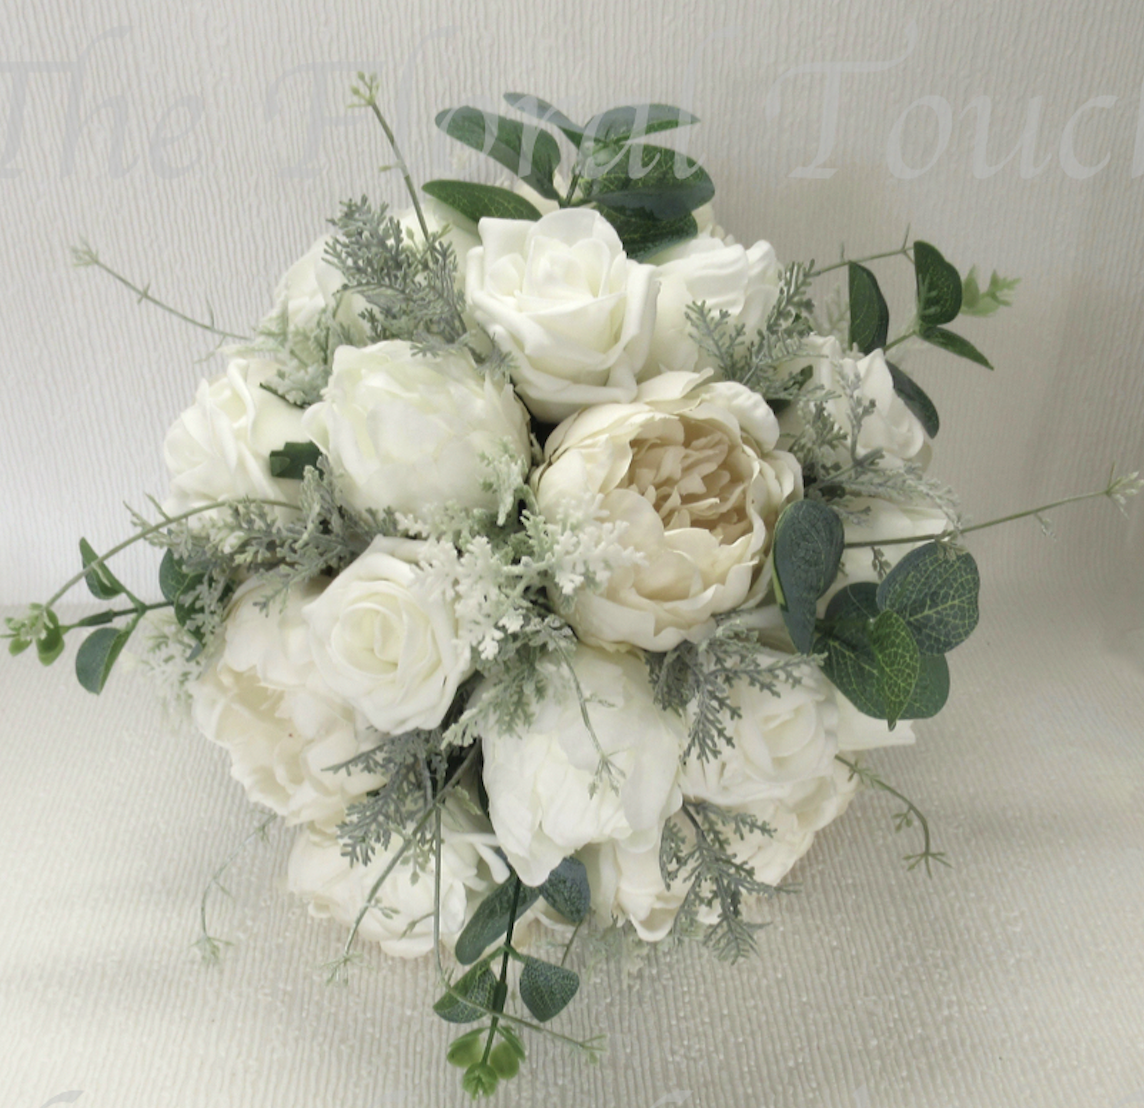 Rose & peony brides bouquet, silk wedding flowers, Ivory Peony & Rose Bridal Bouquet